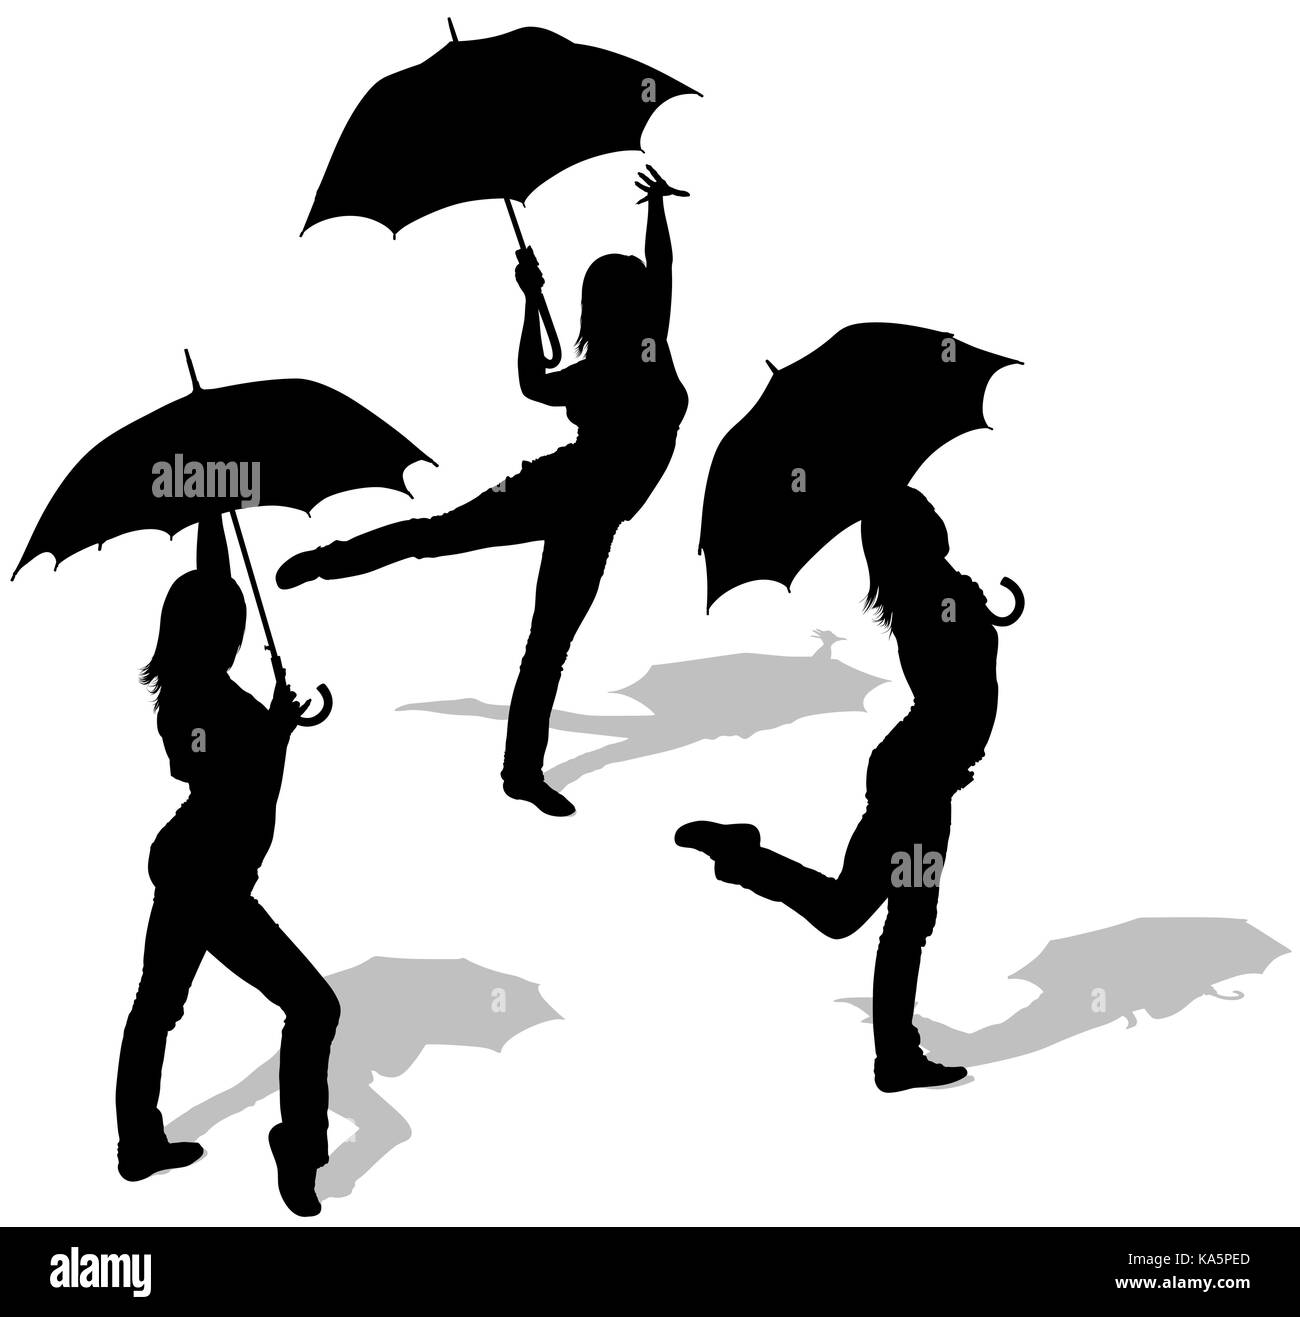 illustration silhouette girl holding umbrella stock photos Me Dancing in the Rain Dancing in the Rain Photography